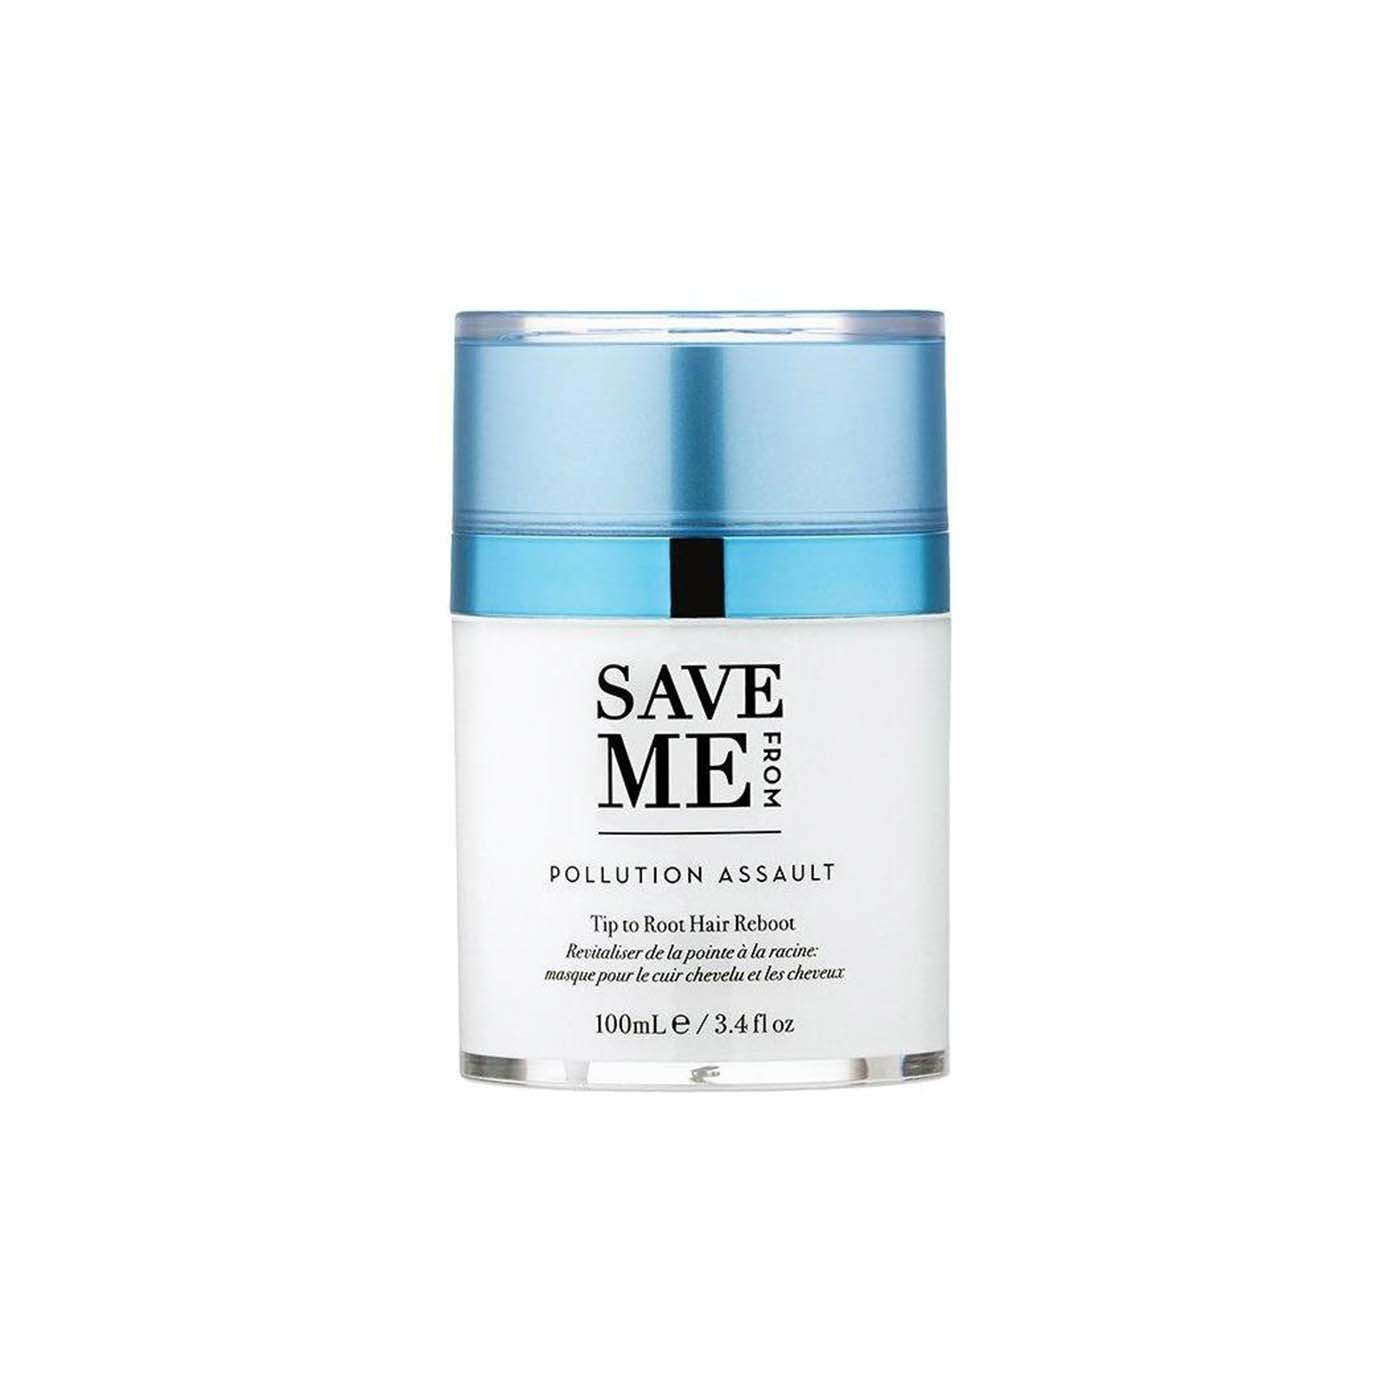 POLLUTION ASSAULT Tip to Root Hair Reboot 3.4 fl oz | Save Me From